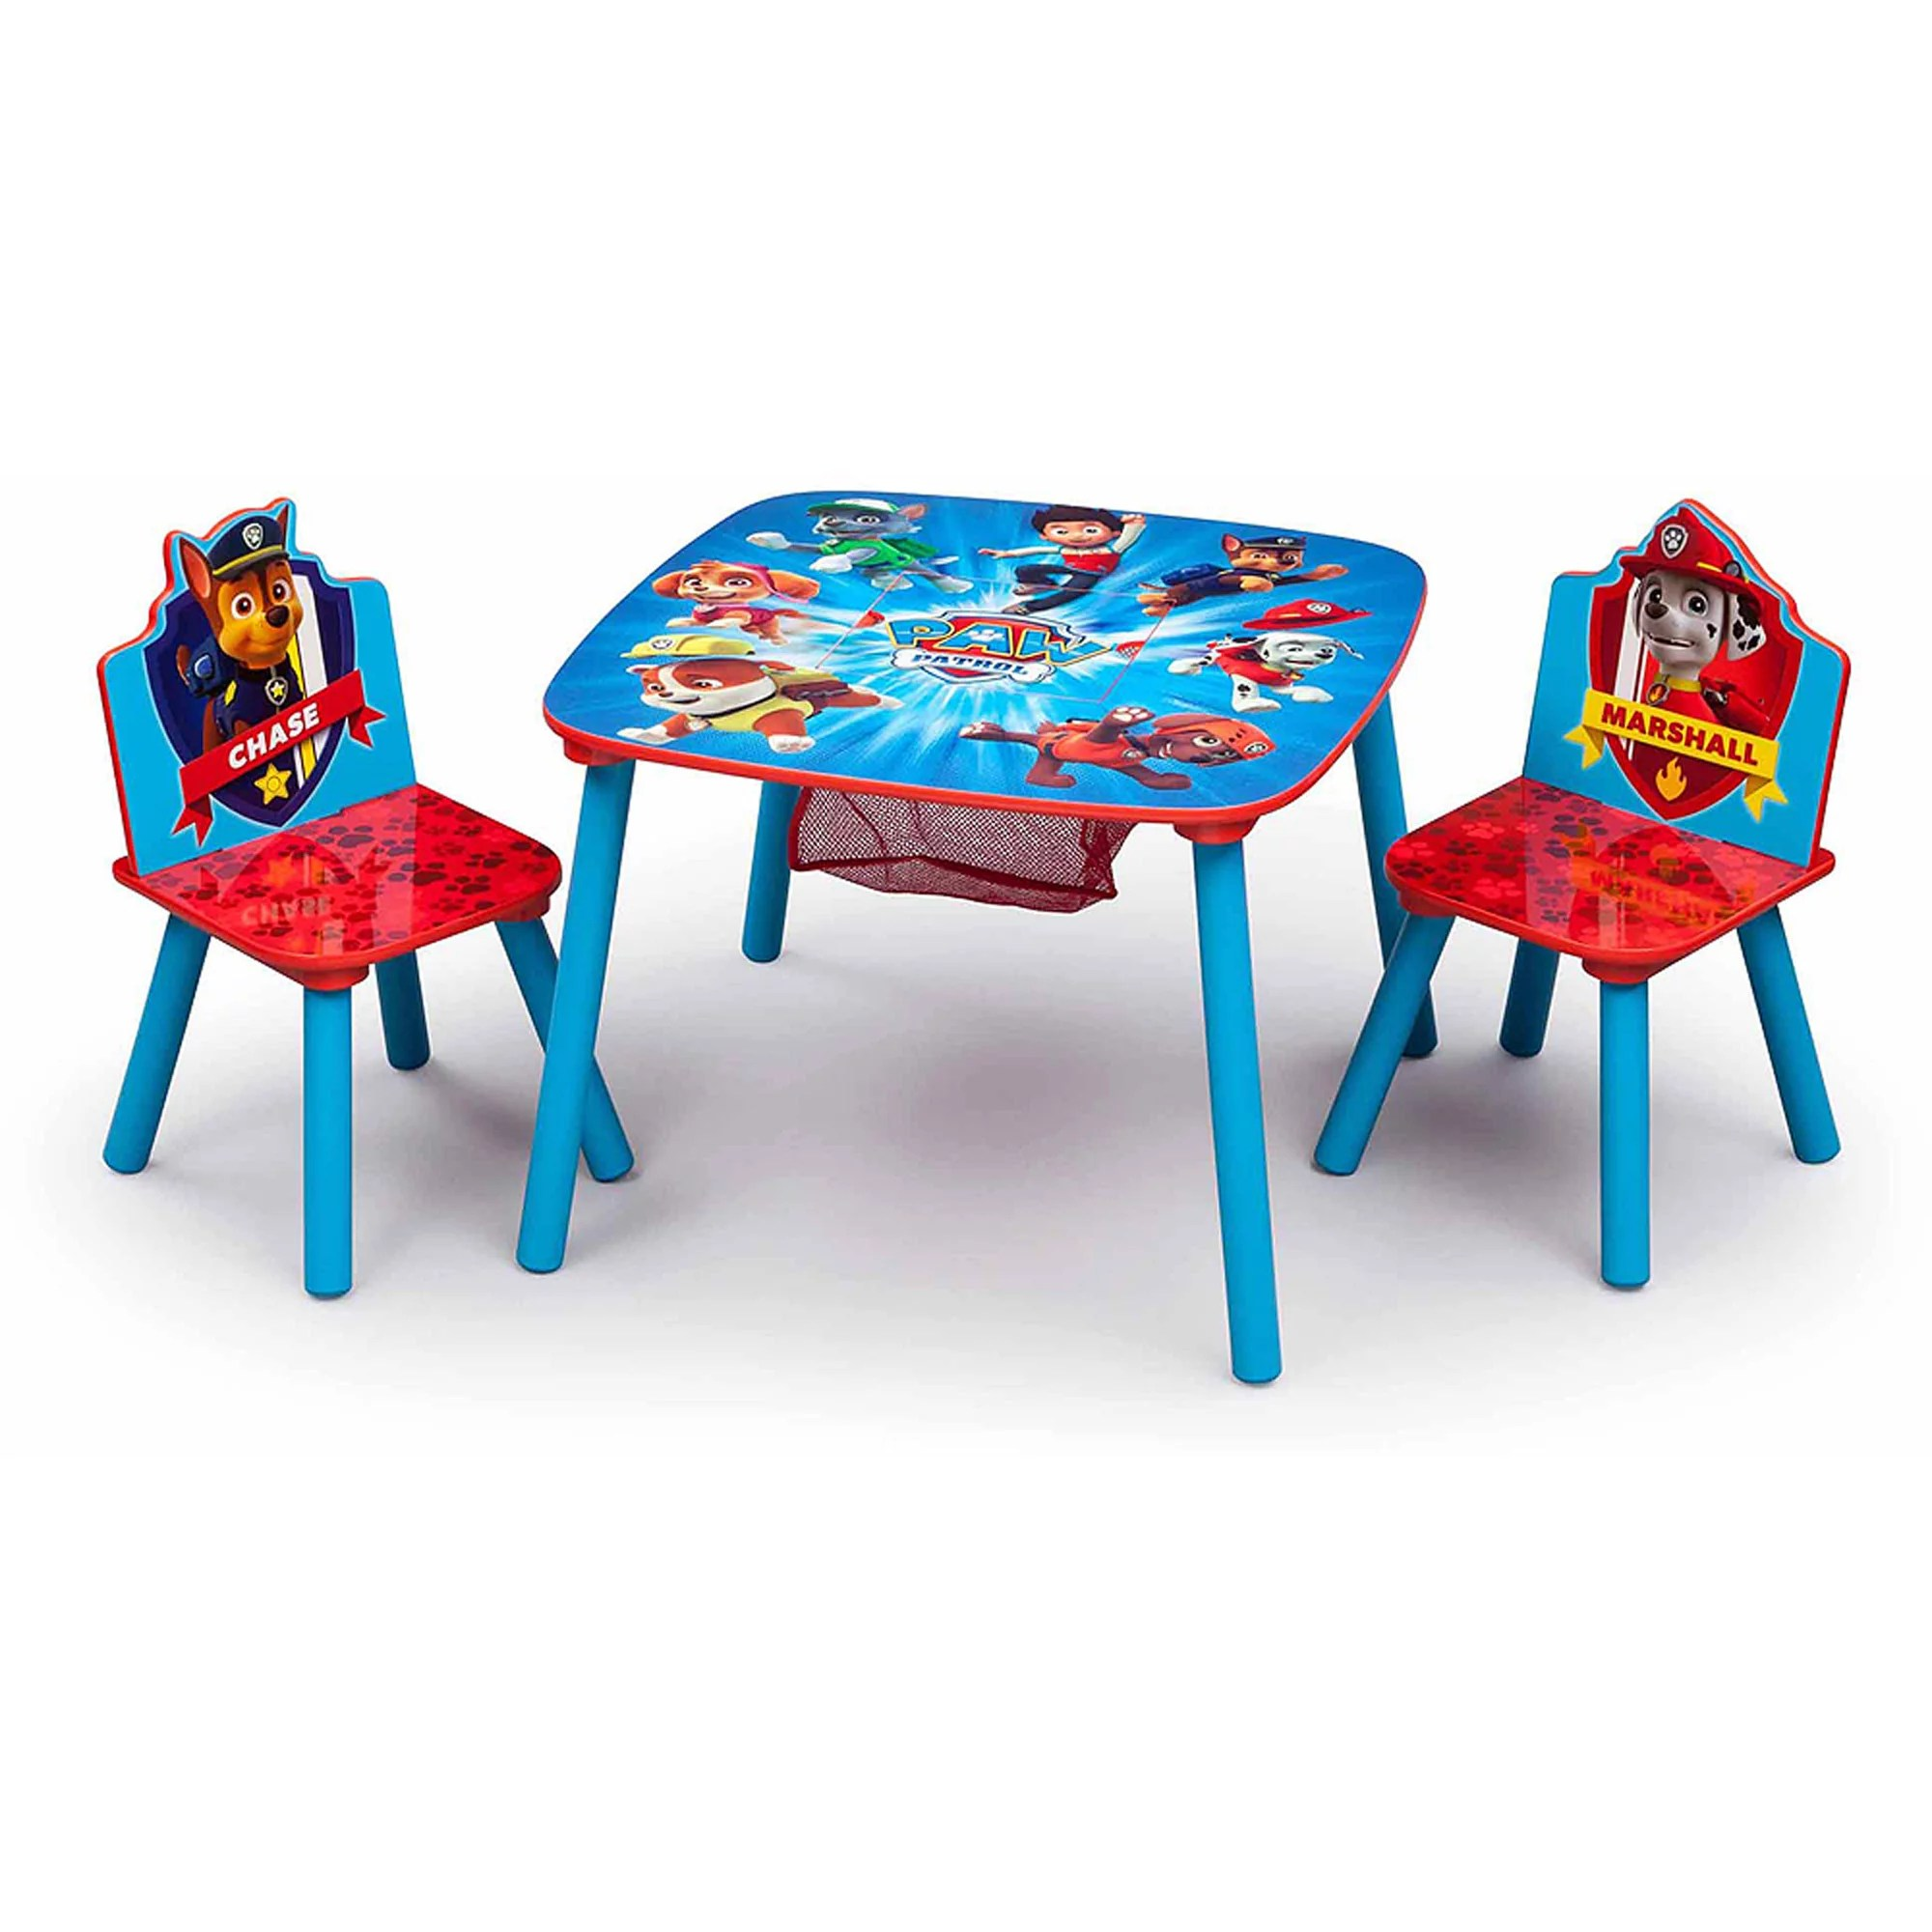 kids chair set christopher knight nick jr dora the explorer wood storage table and chairs by delta children walmart com